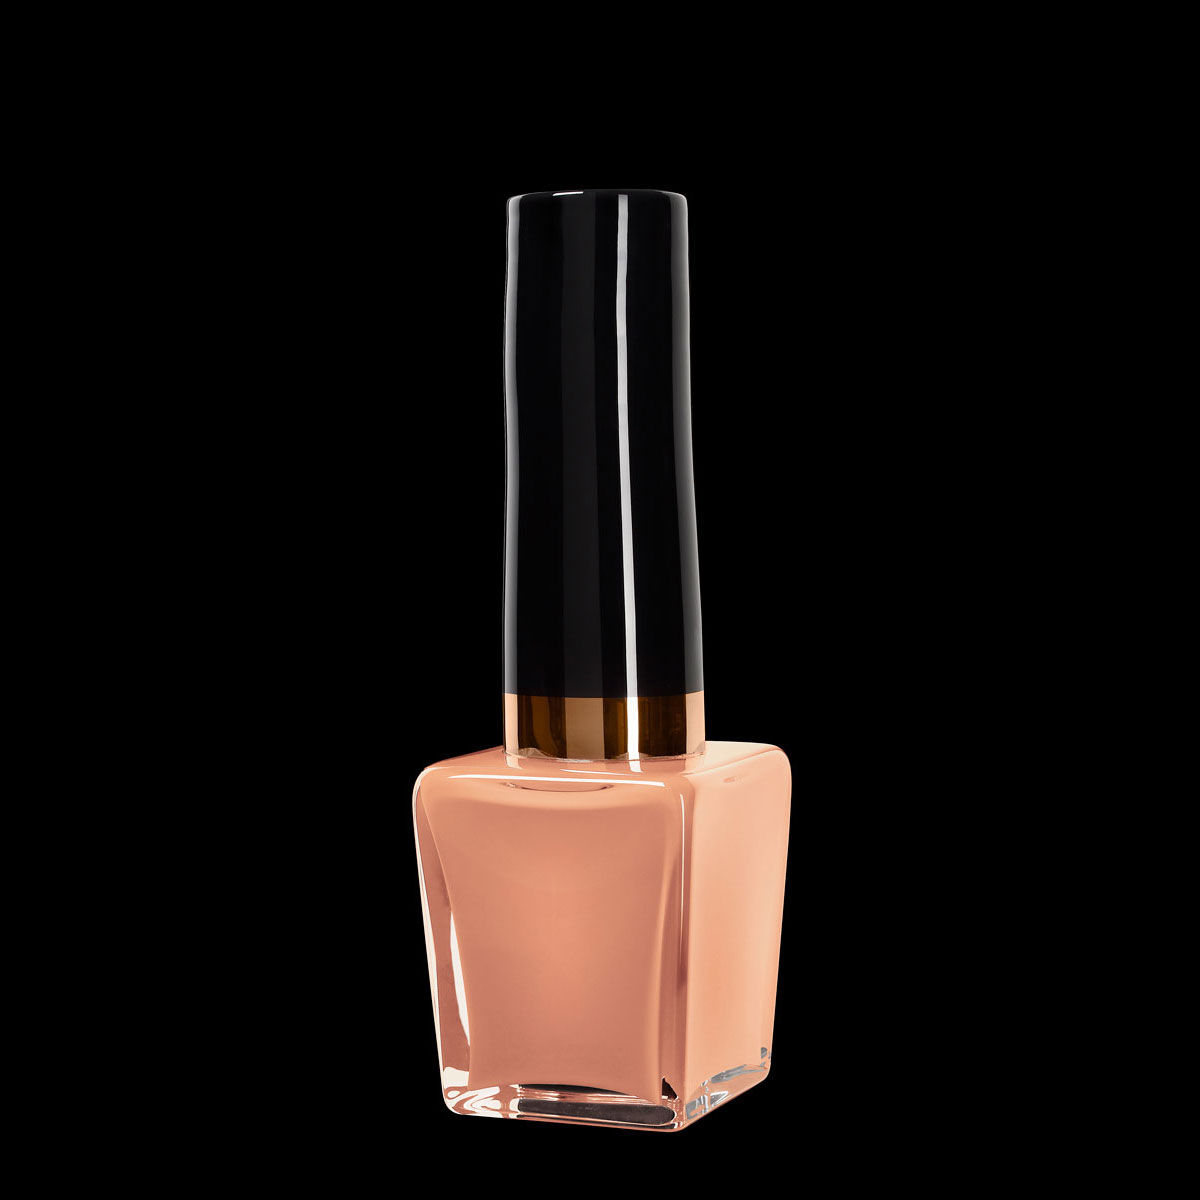 Kosta Boda Make Up, Nail Polish Apricot